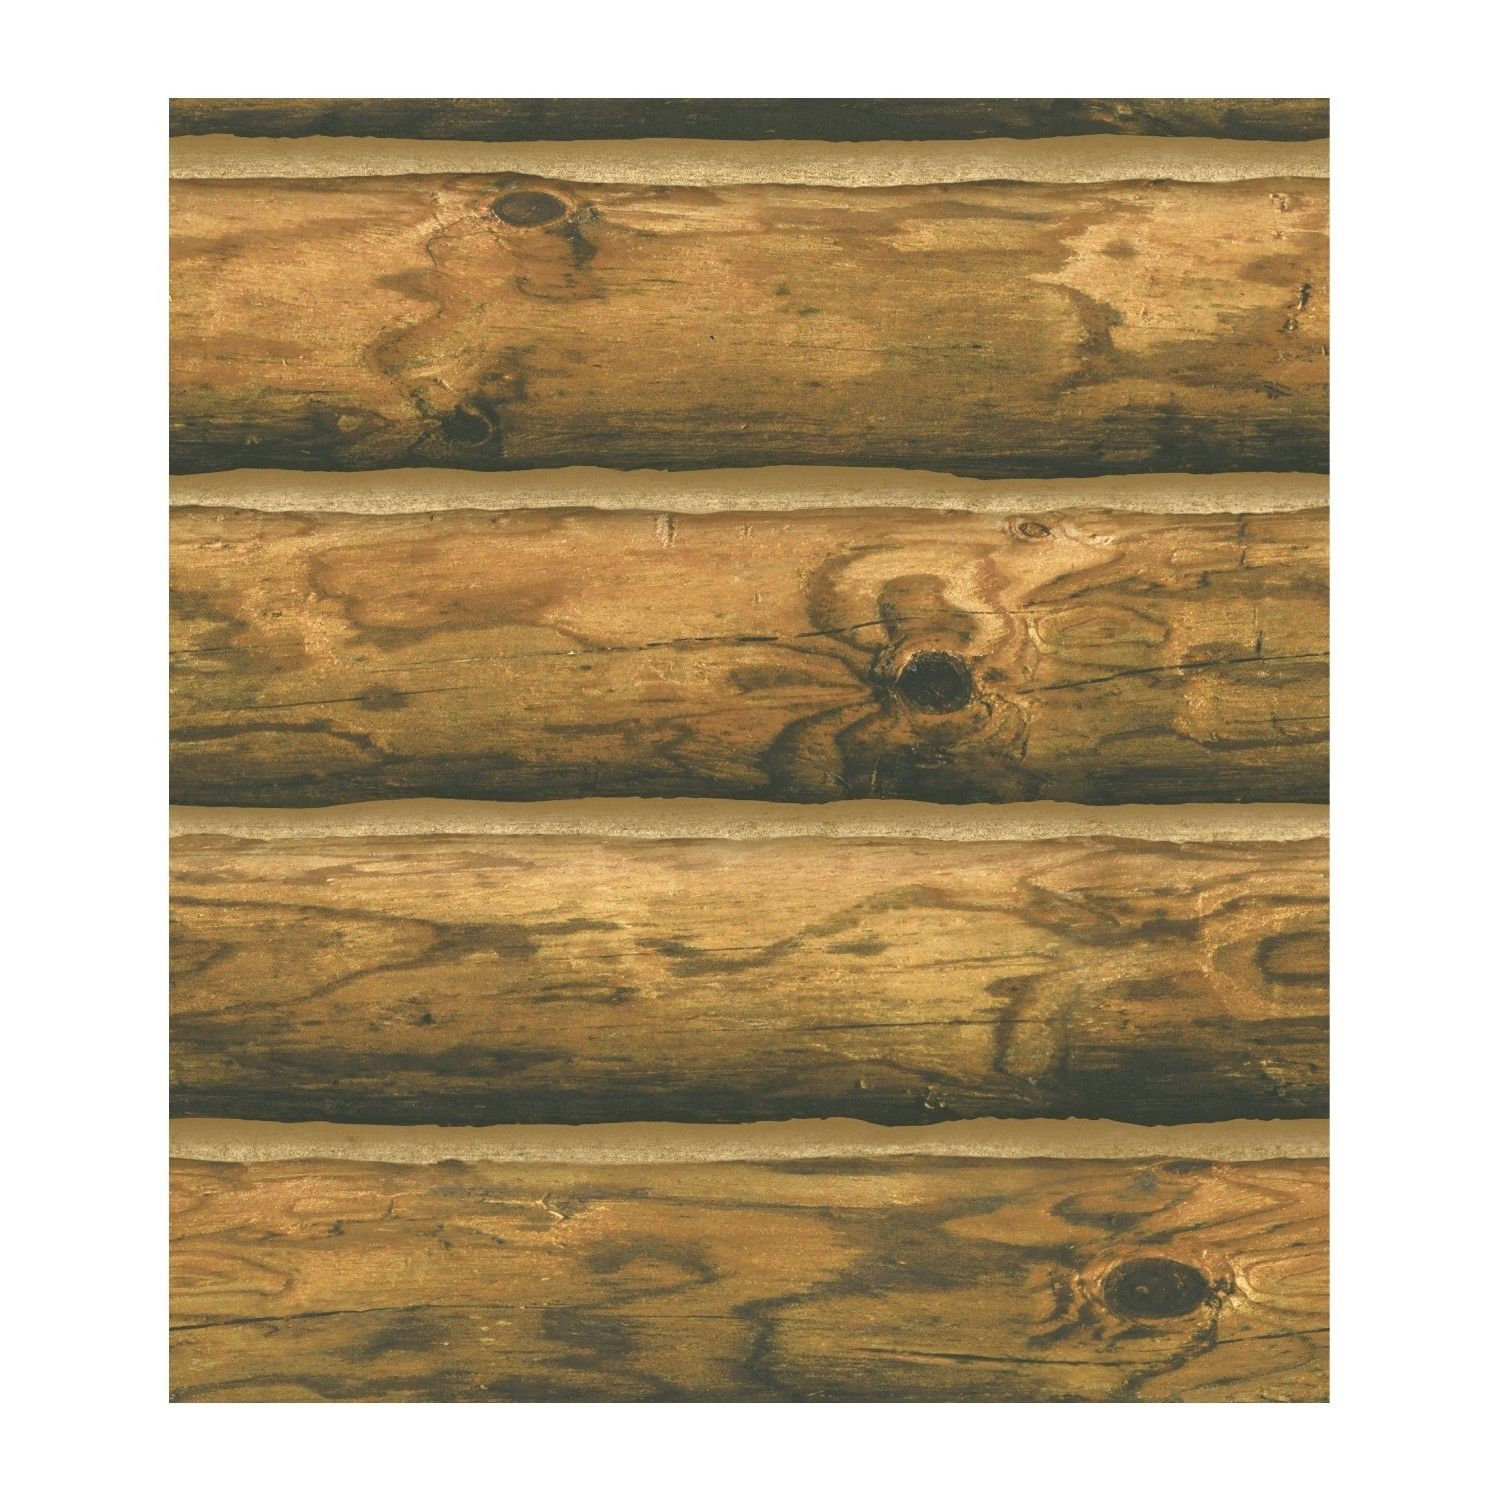 Log Wallpaper Rustic Cabin Lodge CH 7980 Pre Pasted Double Roll 1500x1500